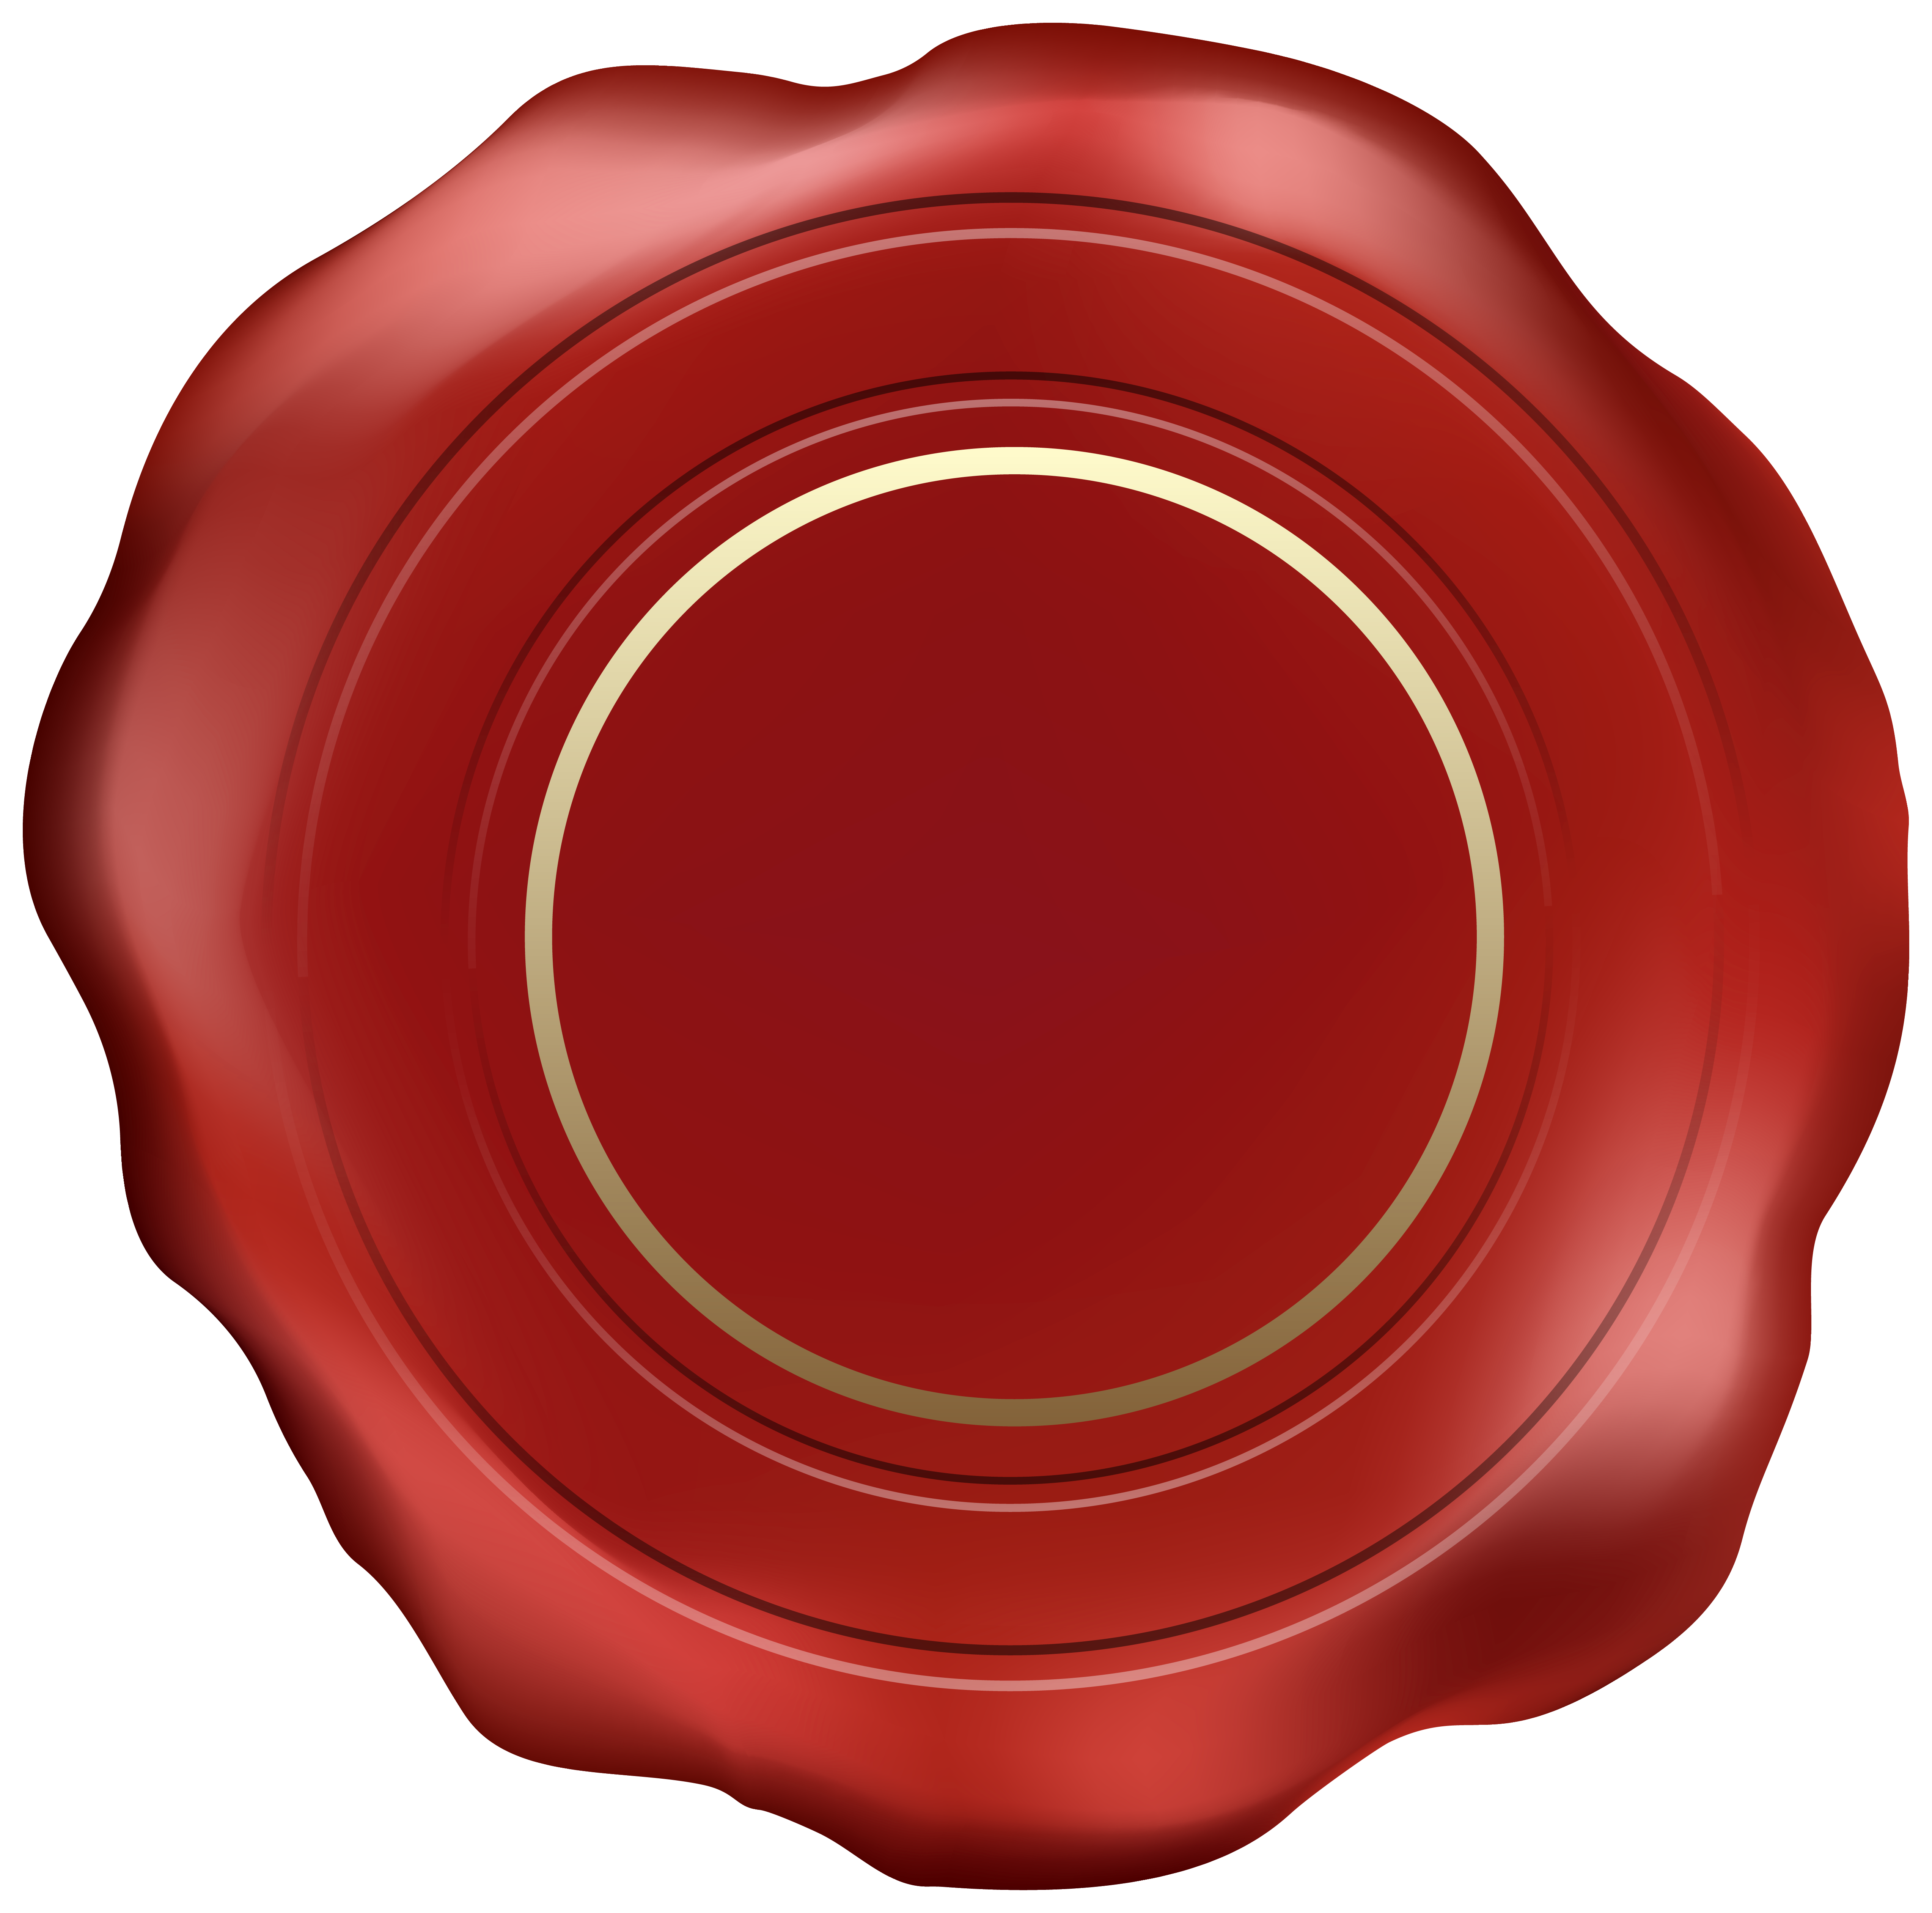 Wax stamp png. Red clipart image gallery